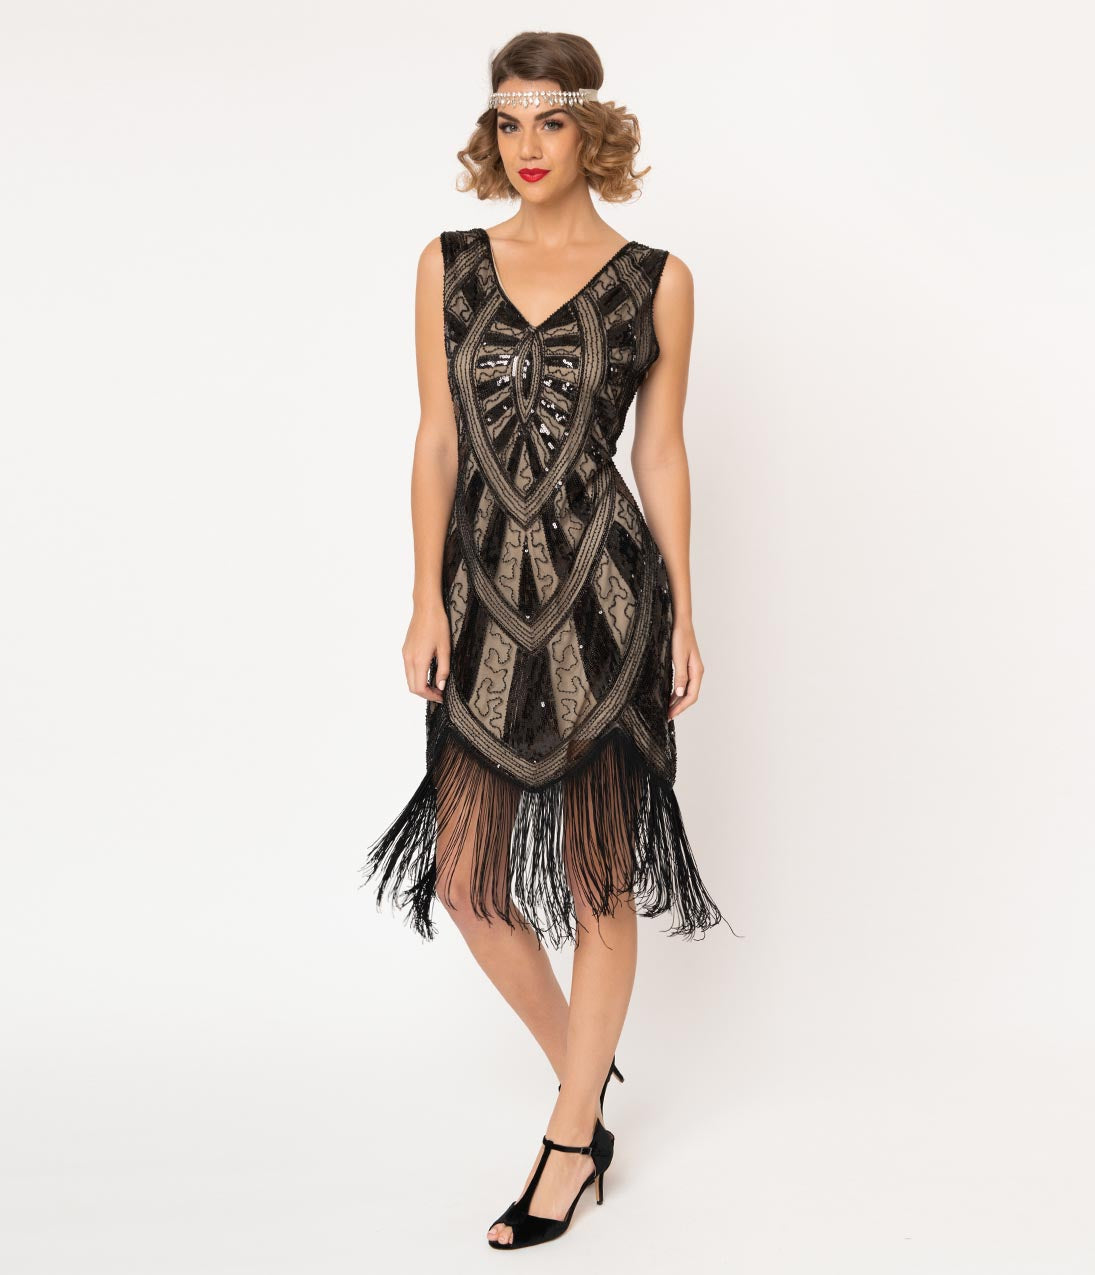 Gangster Costumes & Outfits | Women's and Men's Unique Vintage 1920S Black  Beige Beaded Fringe Magdeleine Flapper Dress $98.00 AT vintagedancer.com